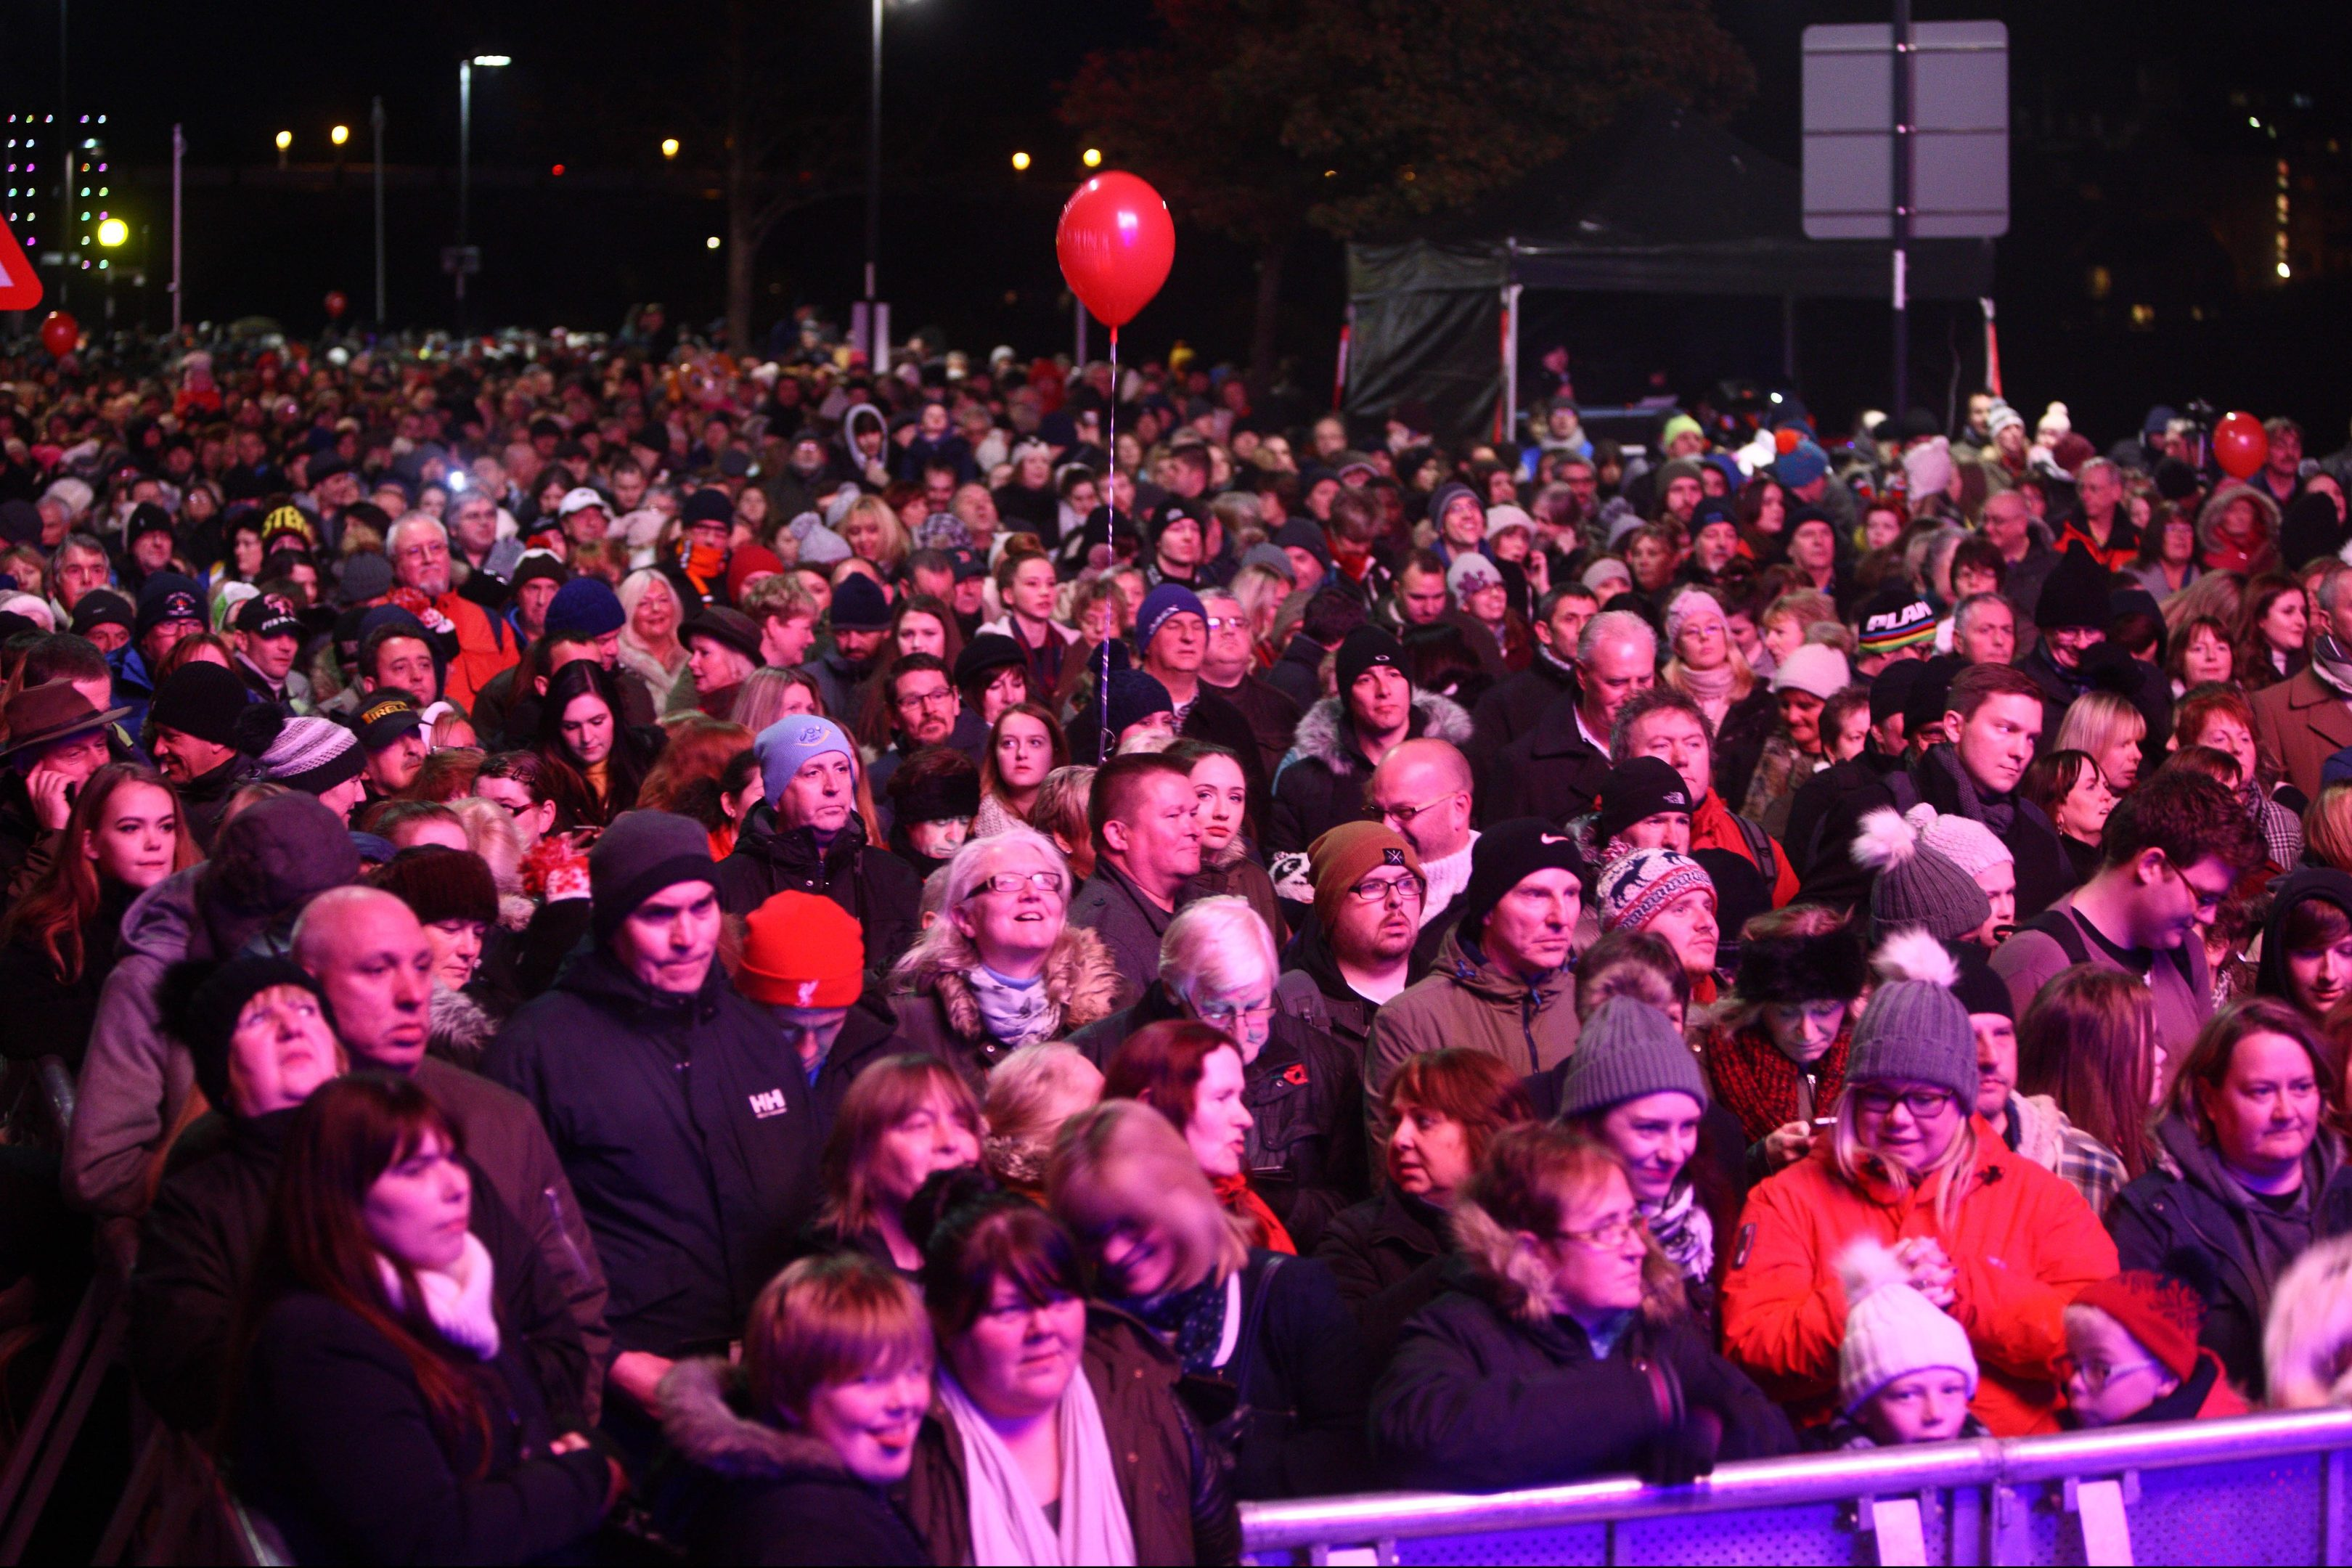 Perth and Kinross Council says the crowds who come to Perth to see the lights switch-on more than justifies the costs of putting on a show,